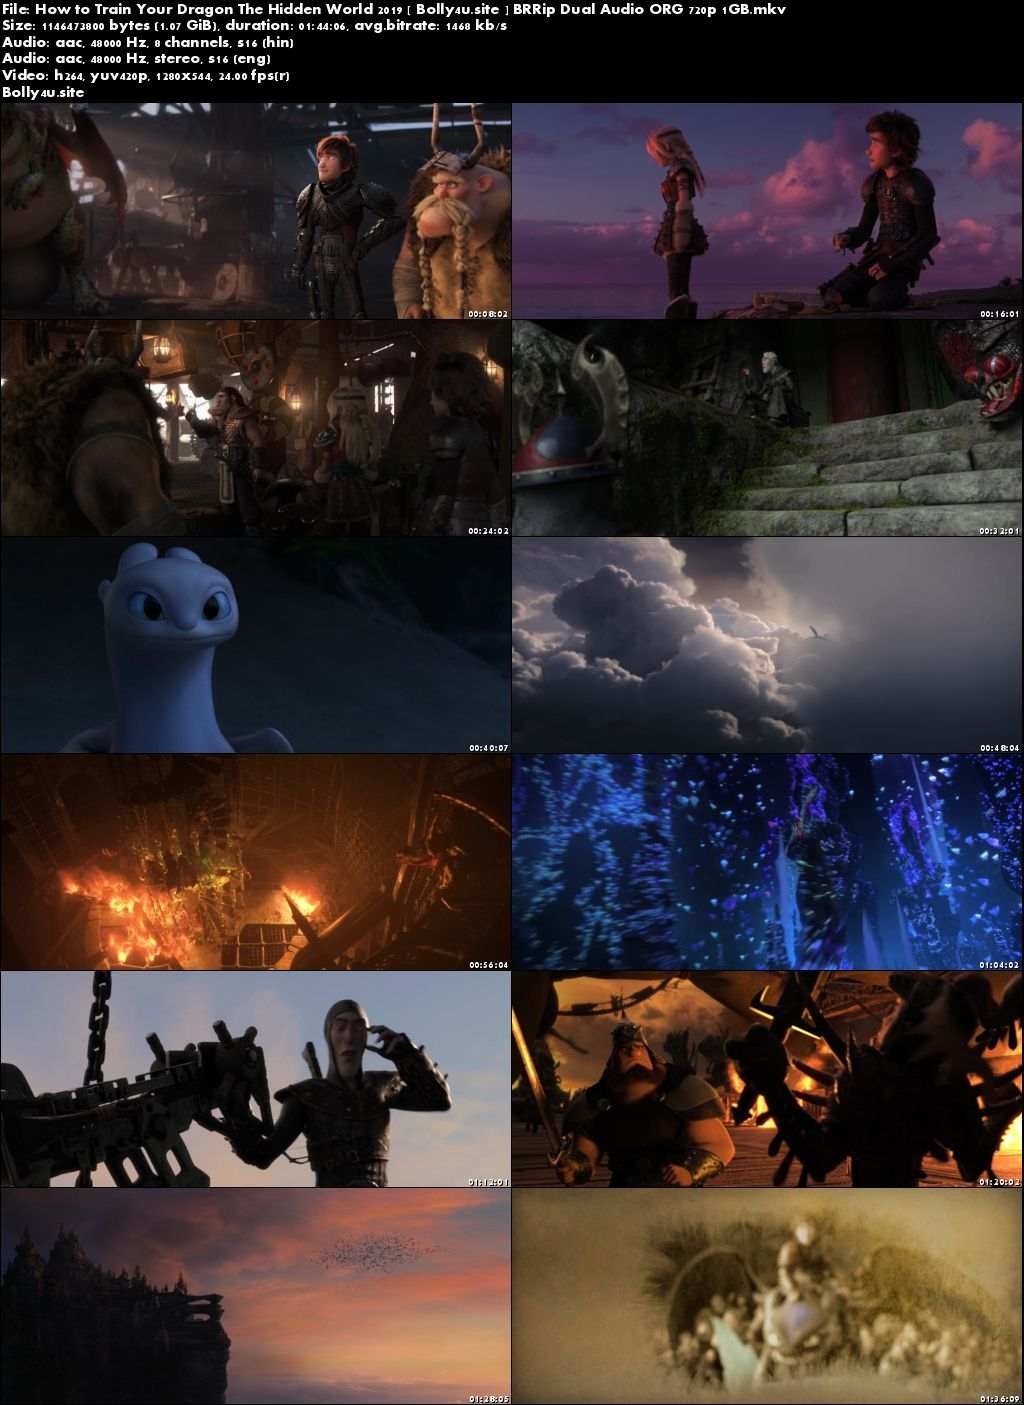 How to Train Your Dragon The Hidden World 2019 BRRip 1GB Hindi Dual Audio ORG 720p Download